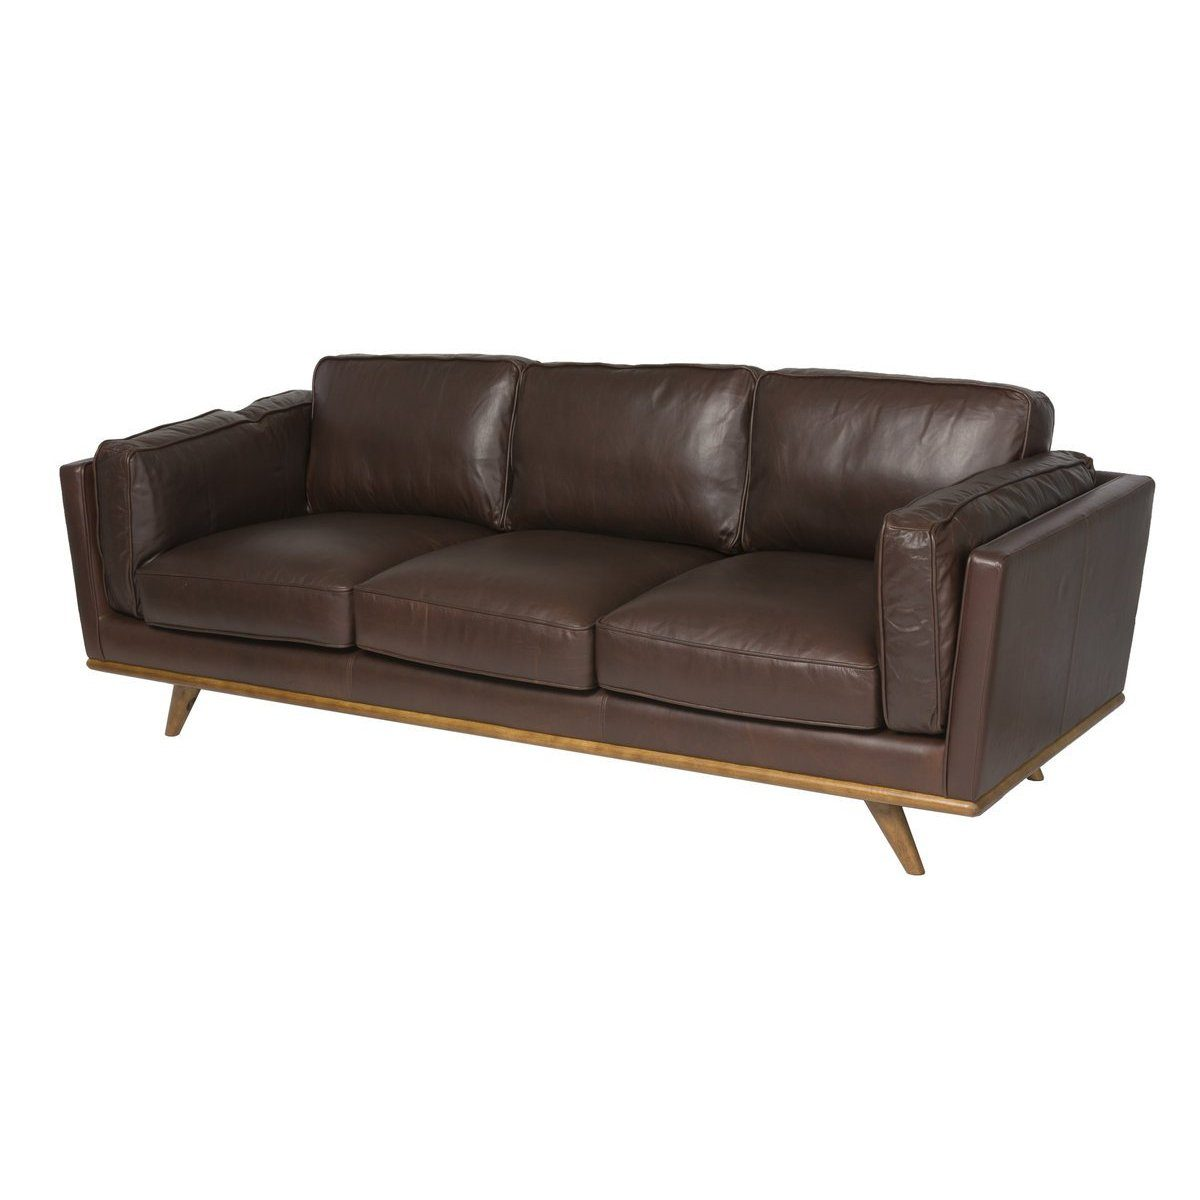 Mid-Century Mocha Leather Sofa - Showhome Furniture